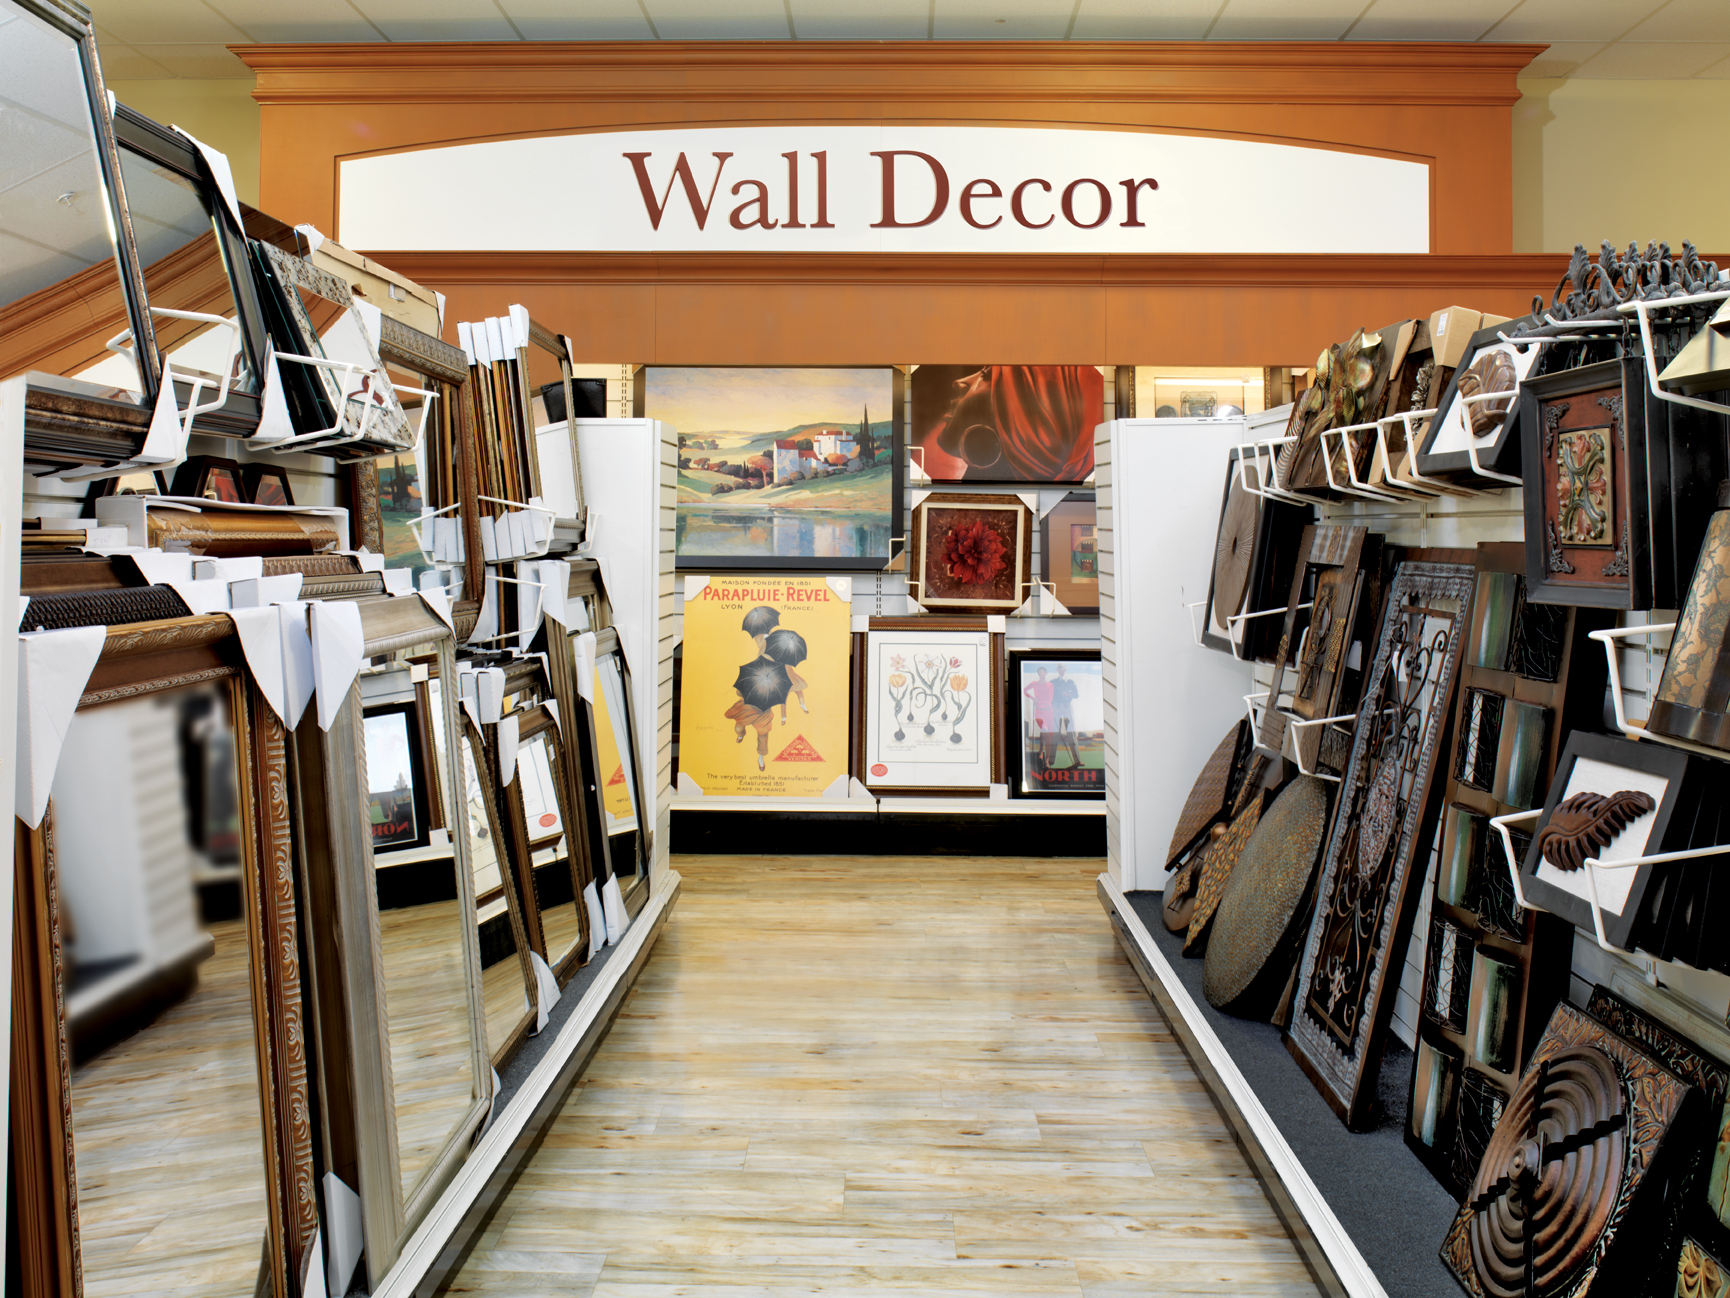 Wall Decor Stores Hgpressstorewalldecorhi  Bucks Happening